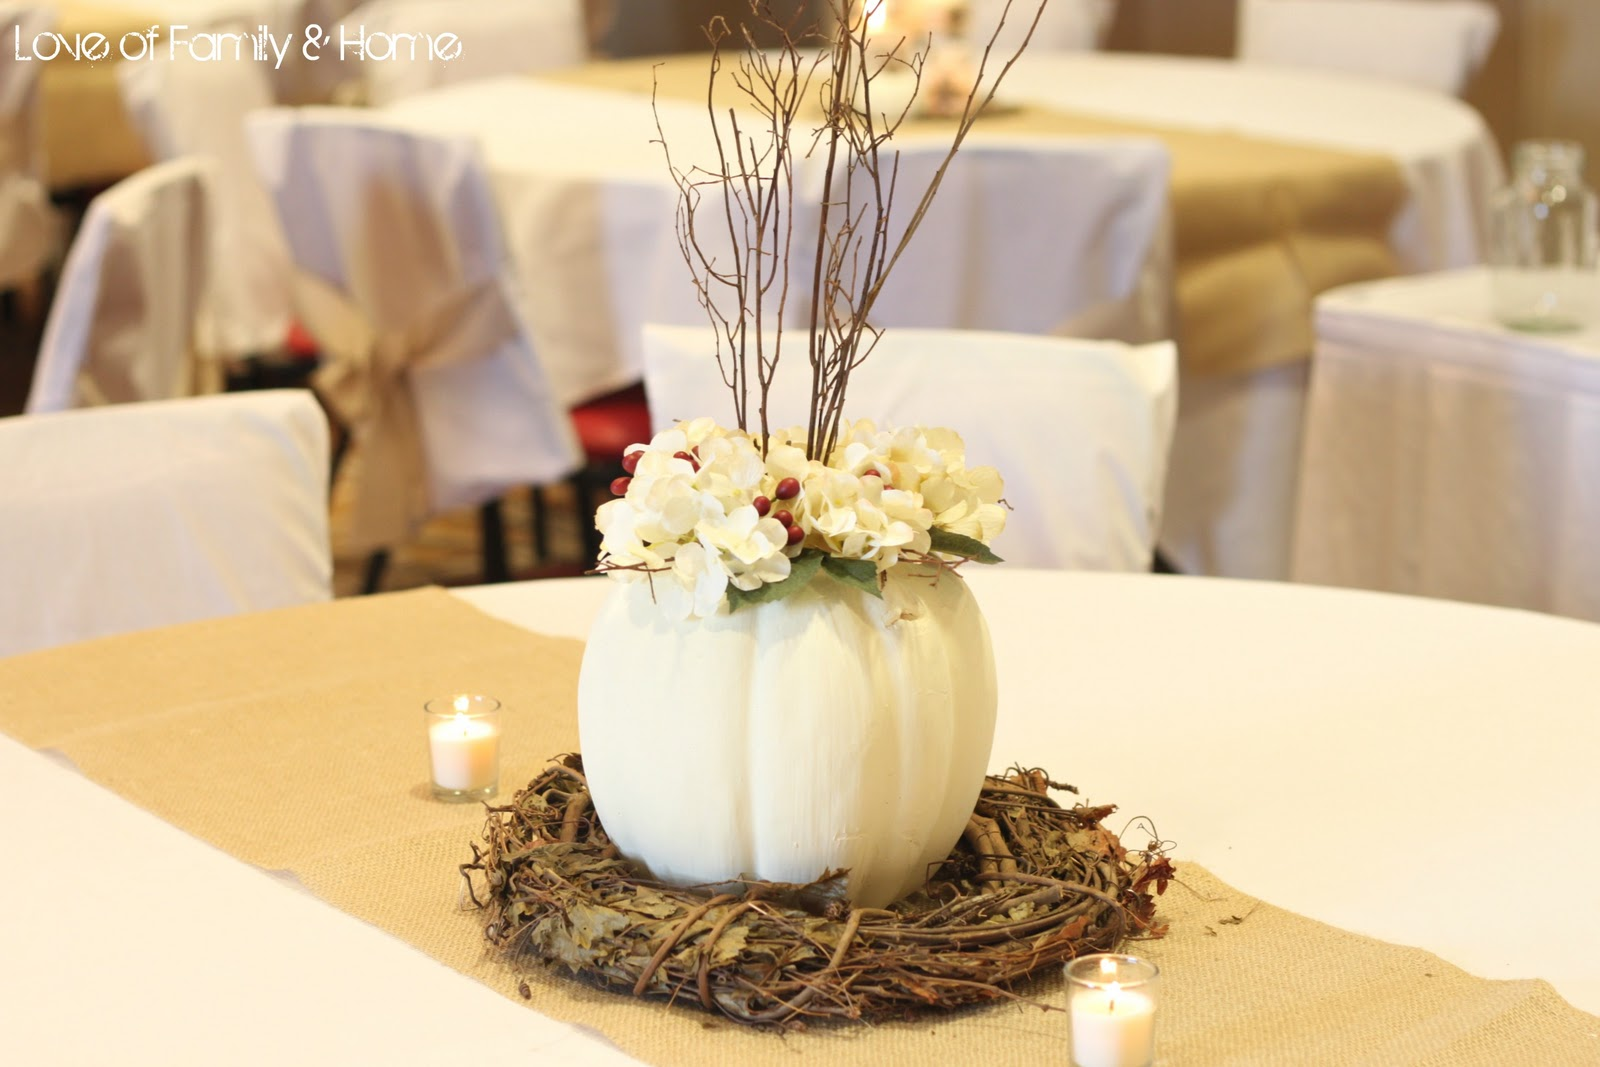 Diy rustic chic fall wedding reveal love of family for Table centerpieces for home